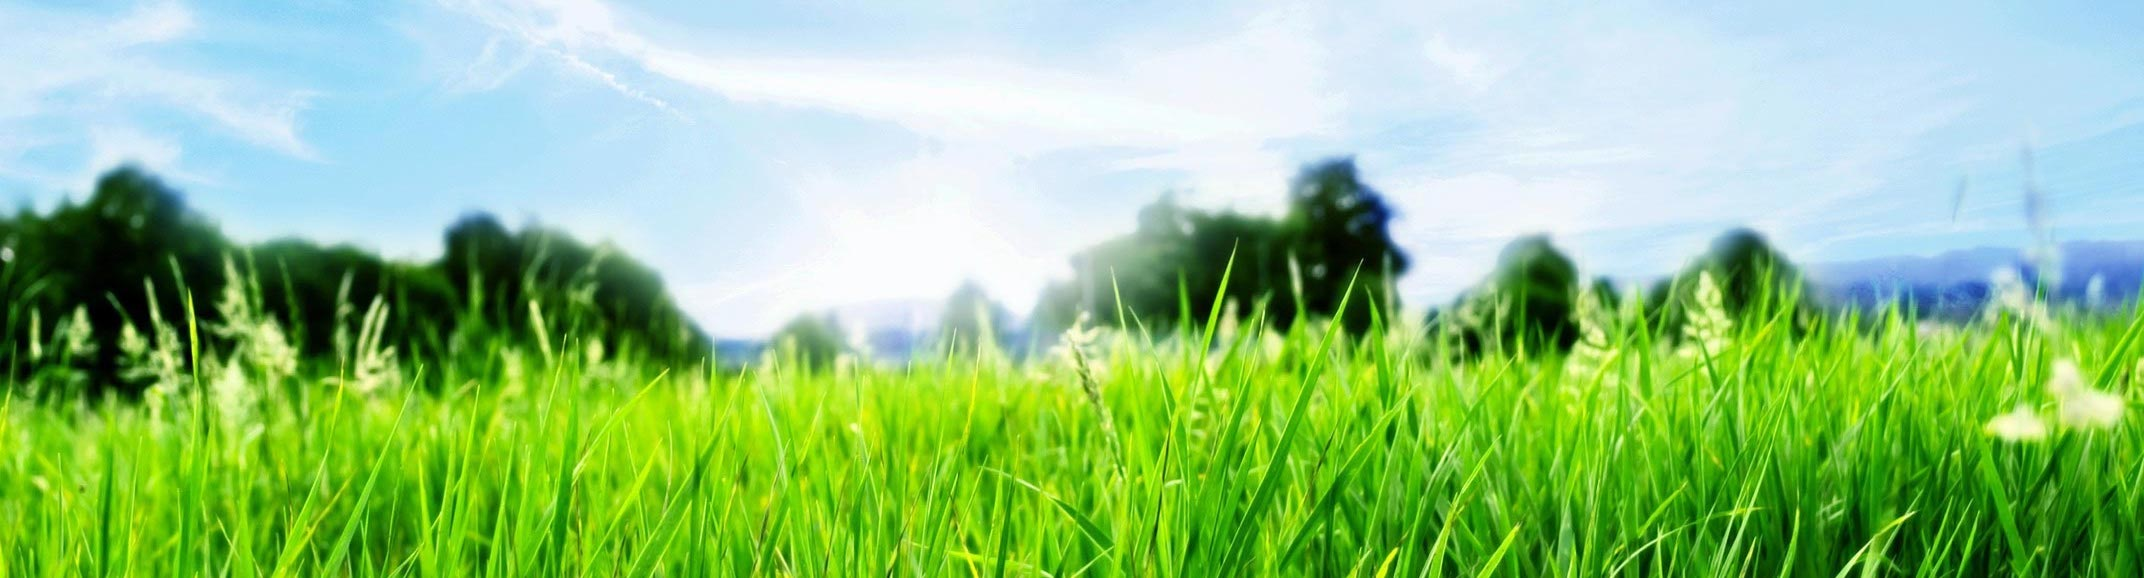 How to Cut Grass in Hot Weather and Keep It Green – 6 Easy Tips.